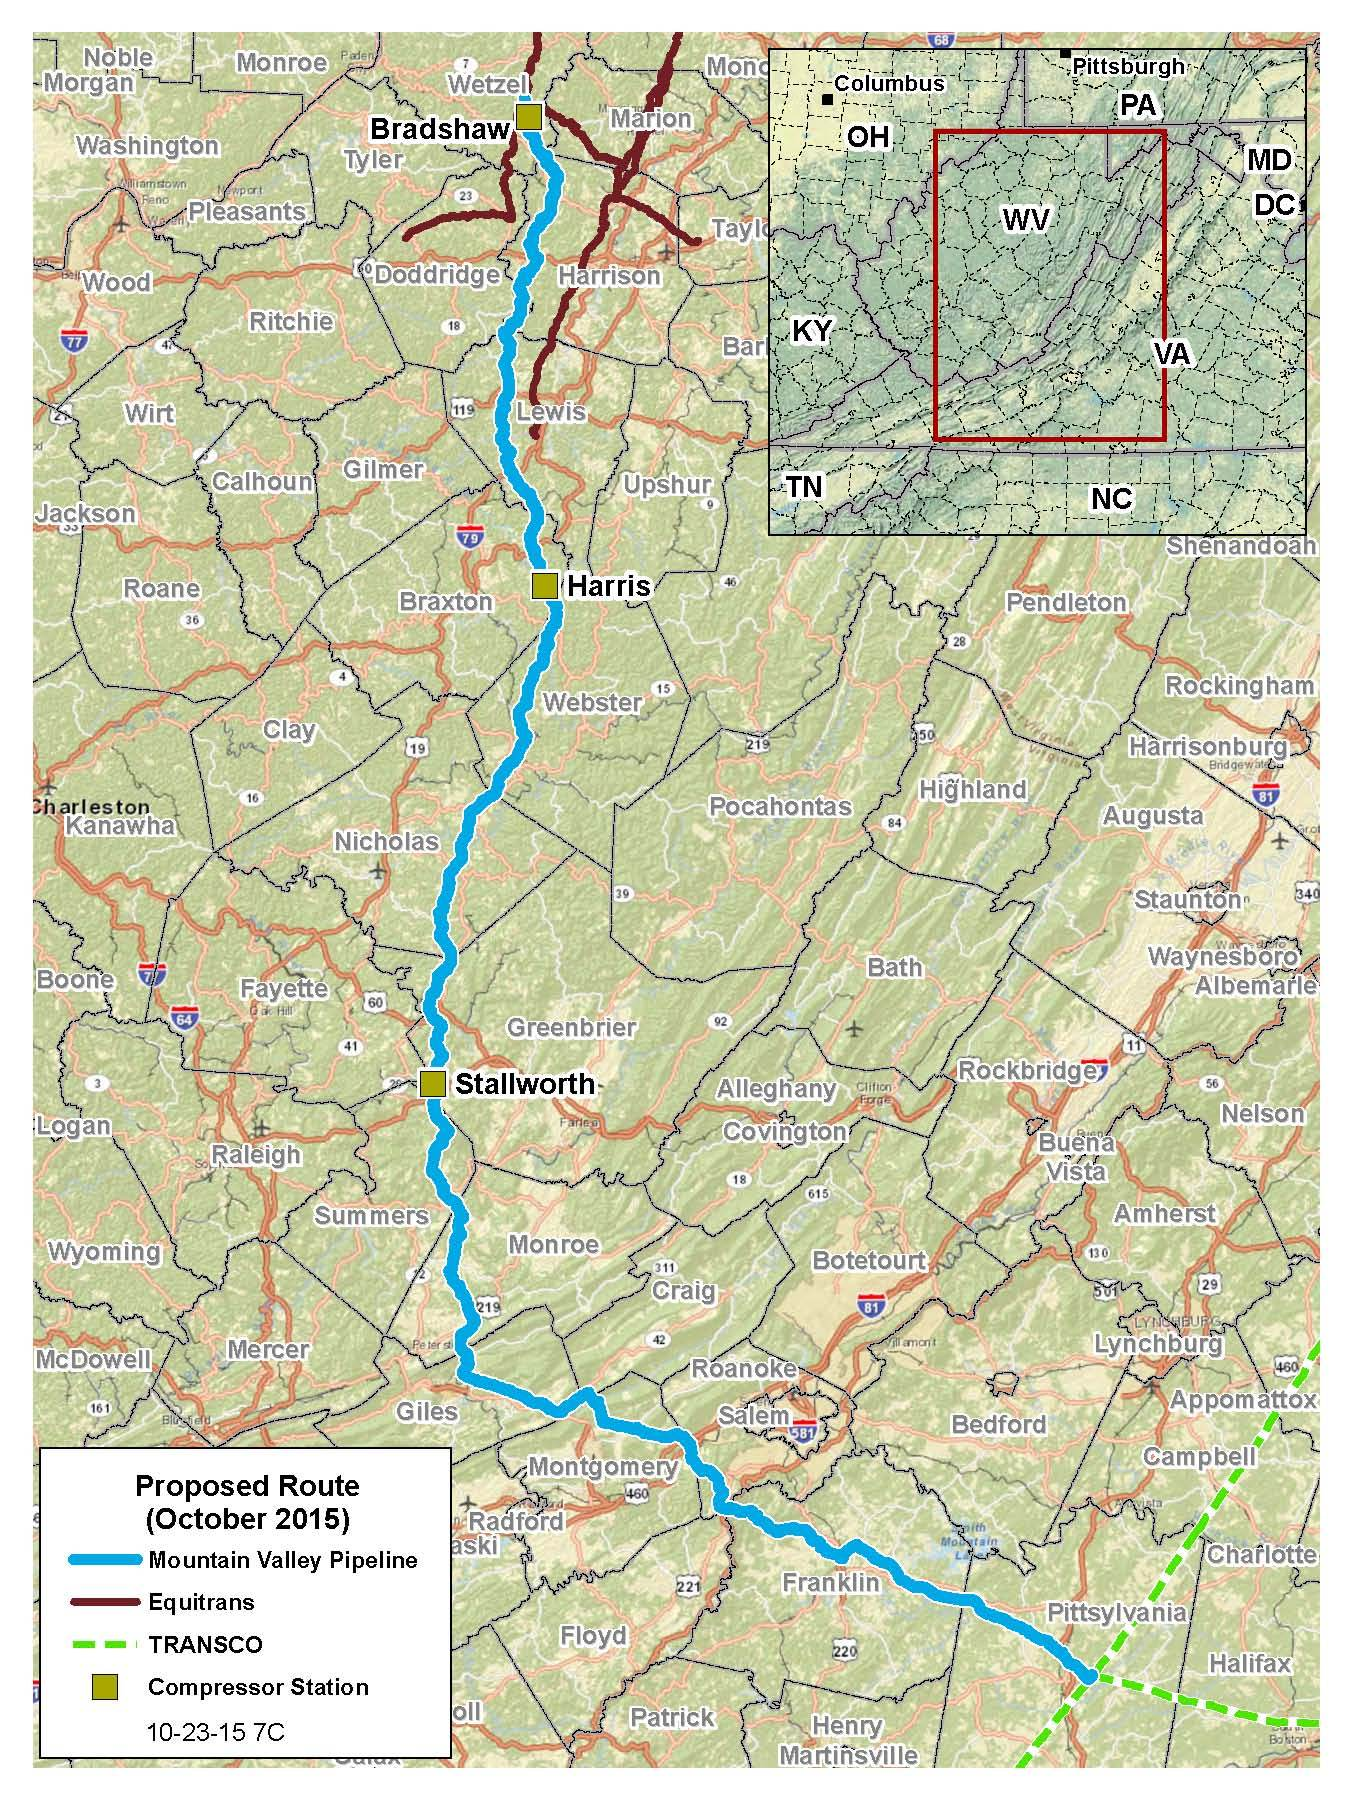 Mountain Valley Pipeline proposed route